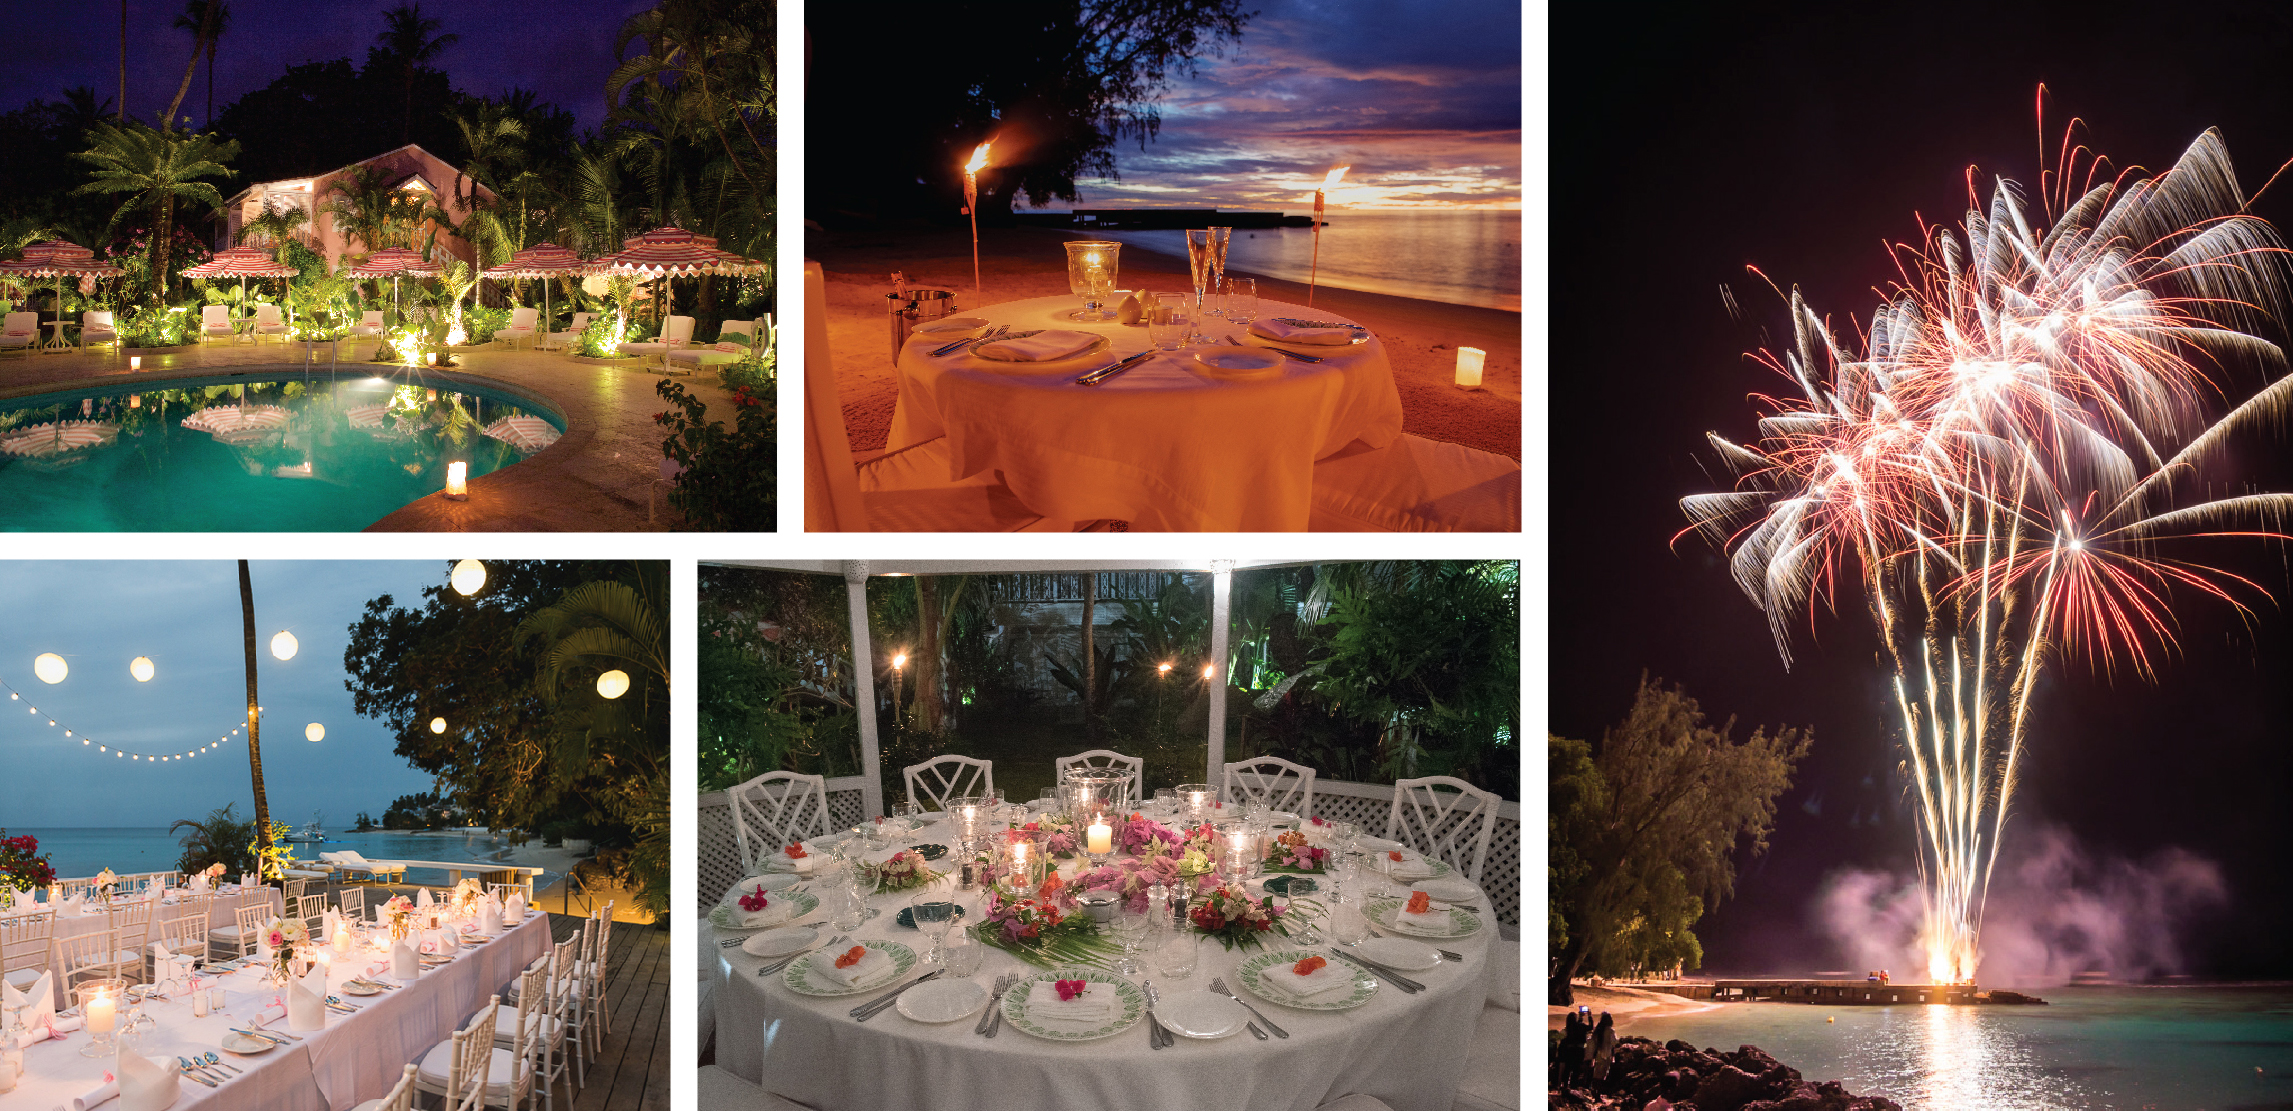 Contact Anne-Marie   Tel: +1 246 422 2291 | Email:  reservations@cobblerscove.com    Weddings and events brochure   Weddings factsheet